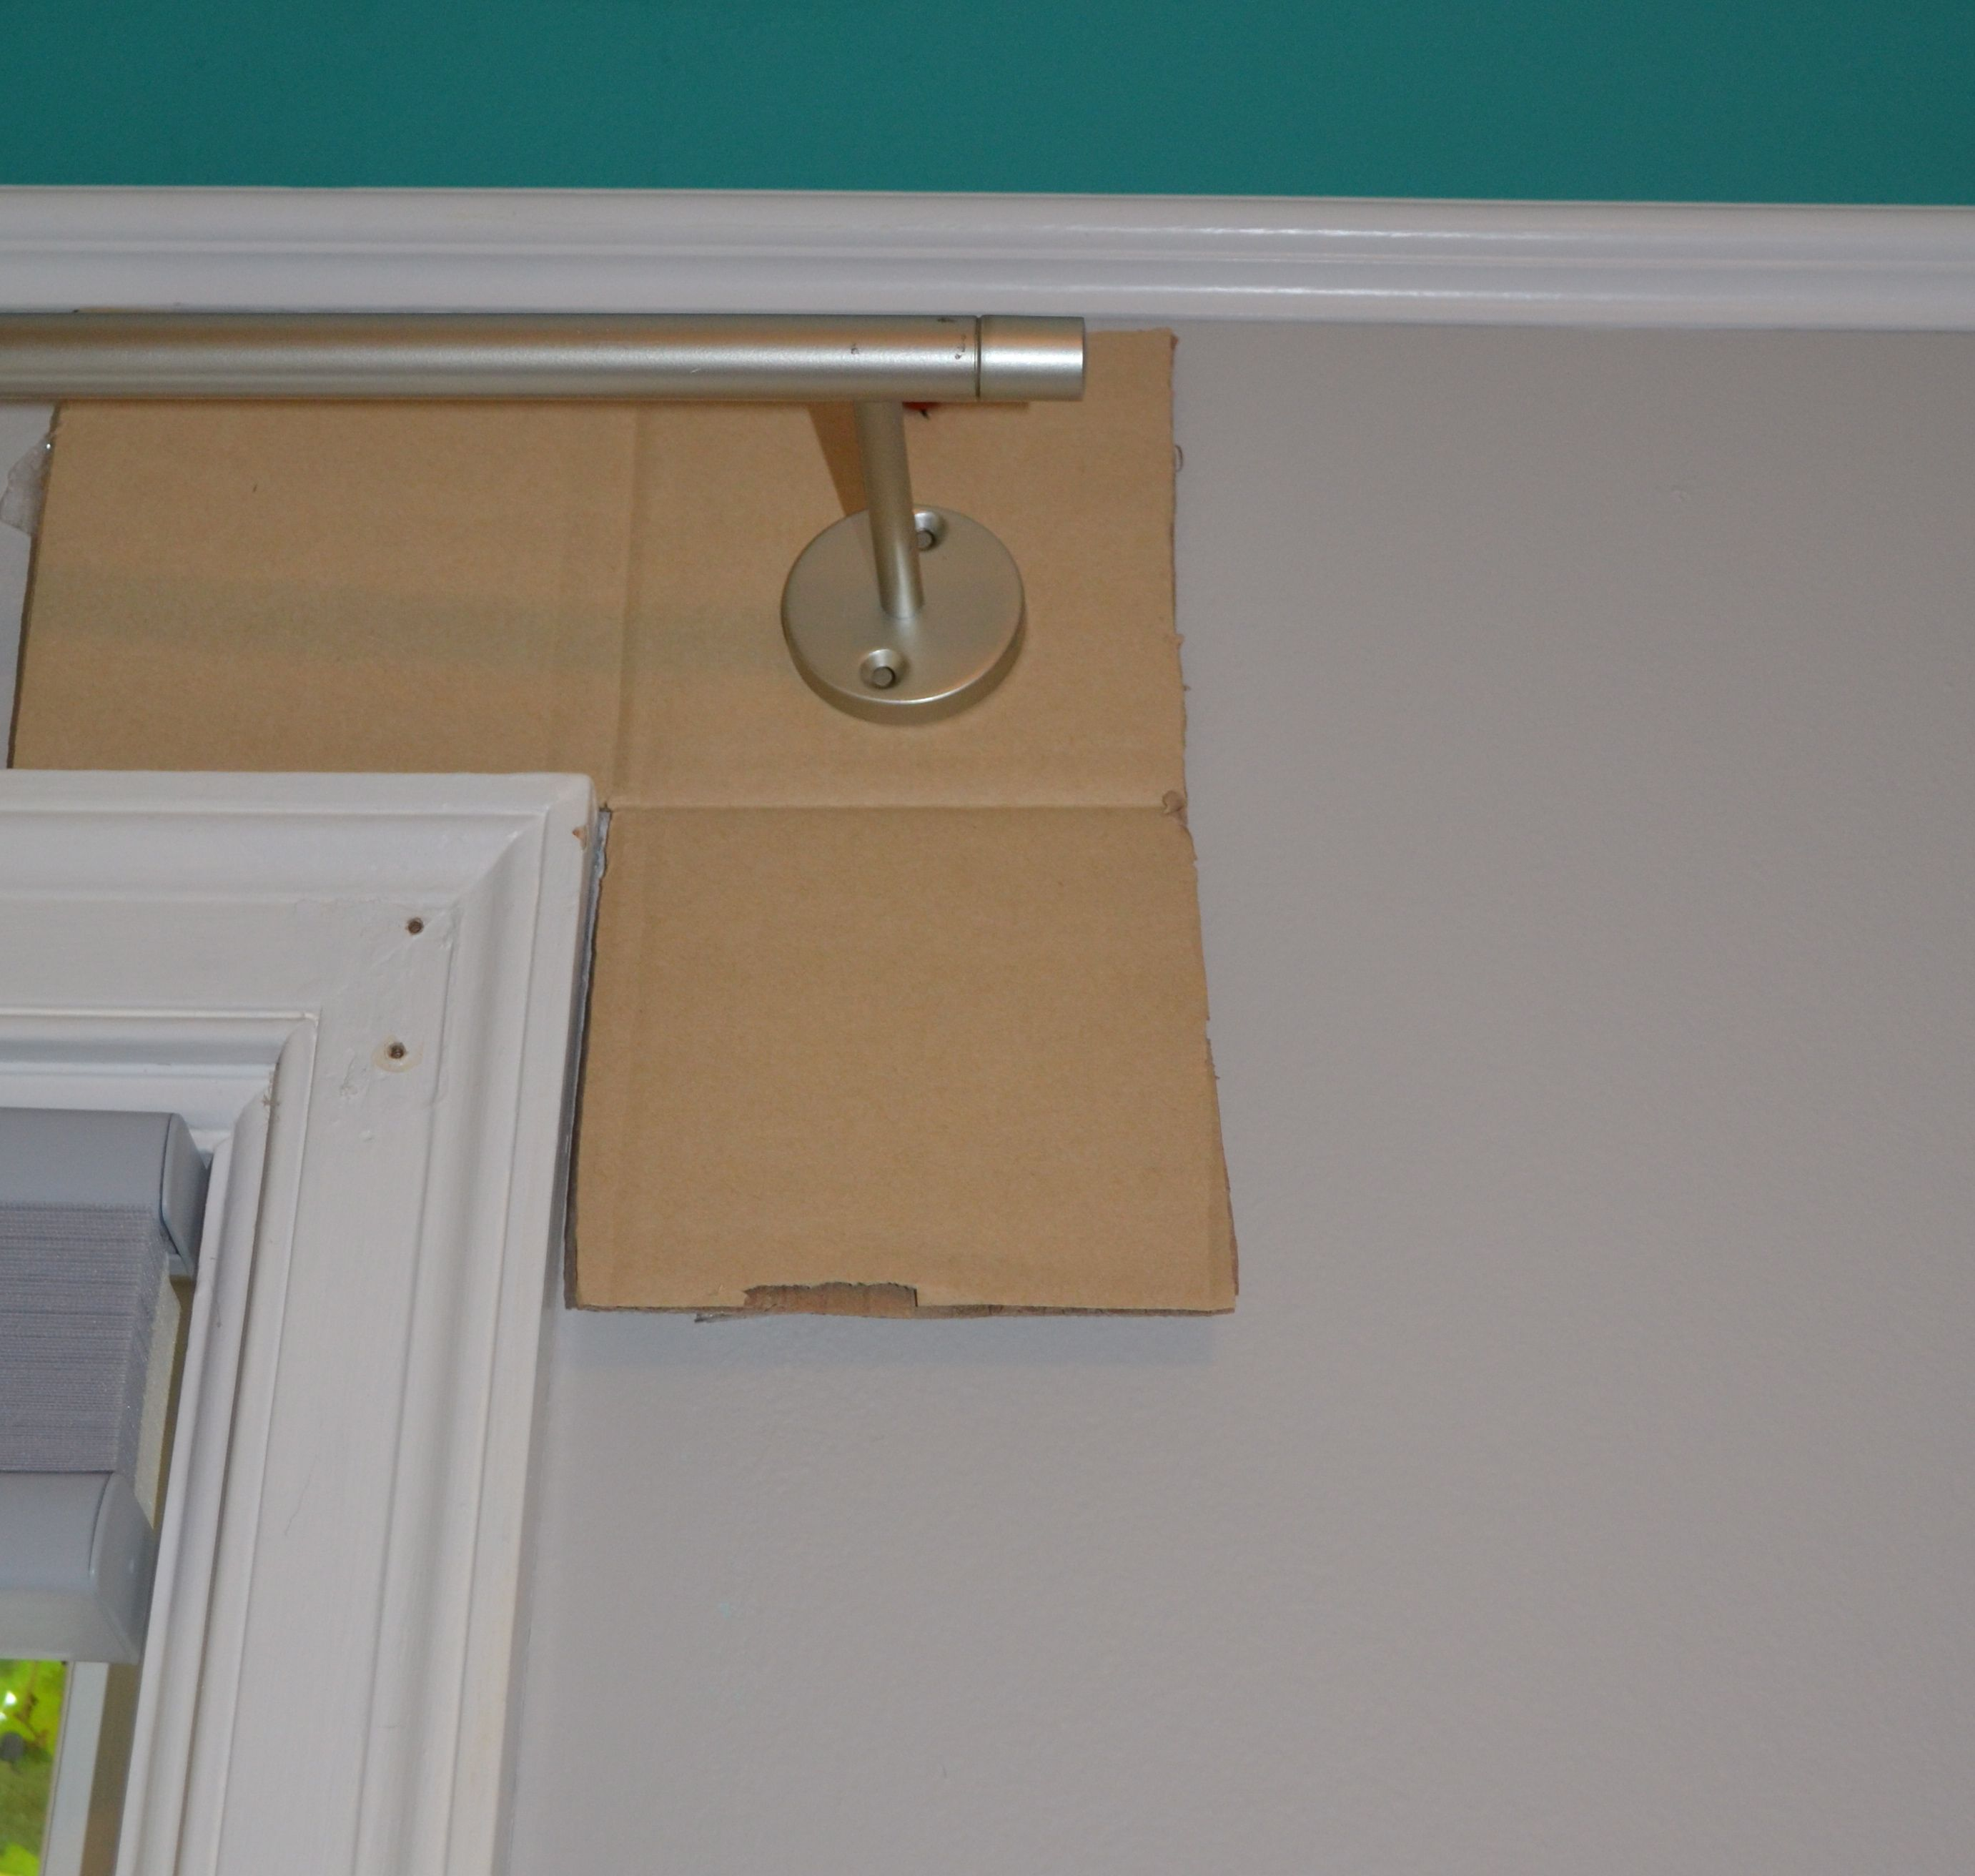 Template For Hanging Curtain Rods